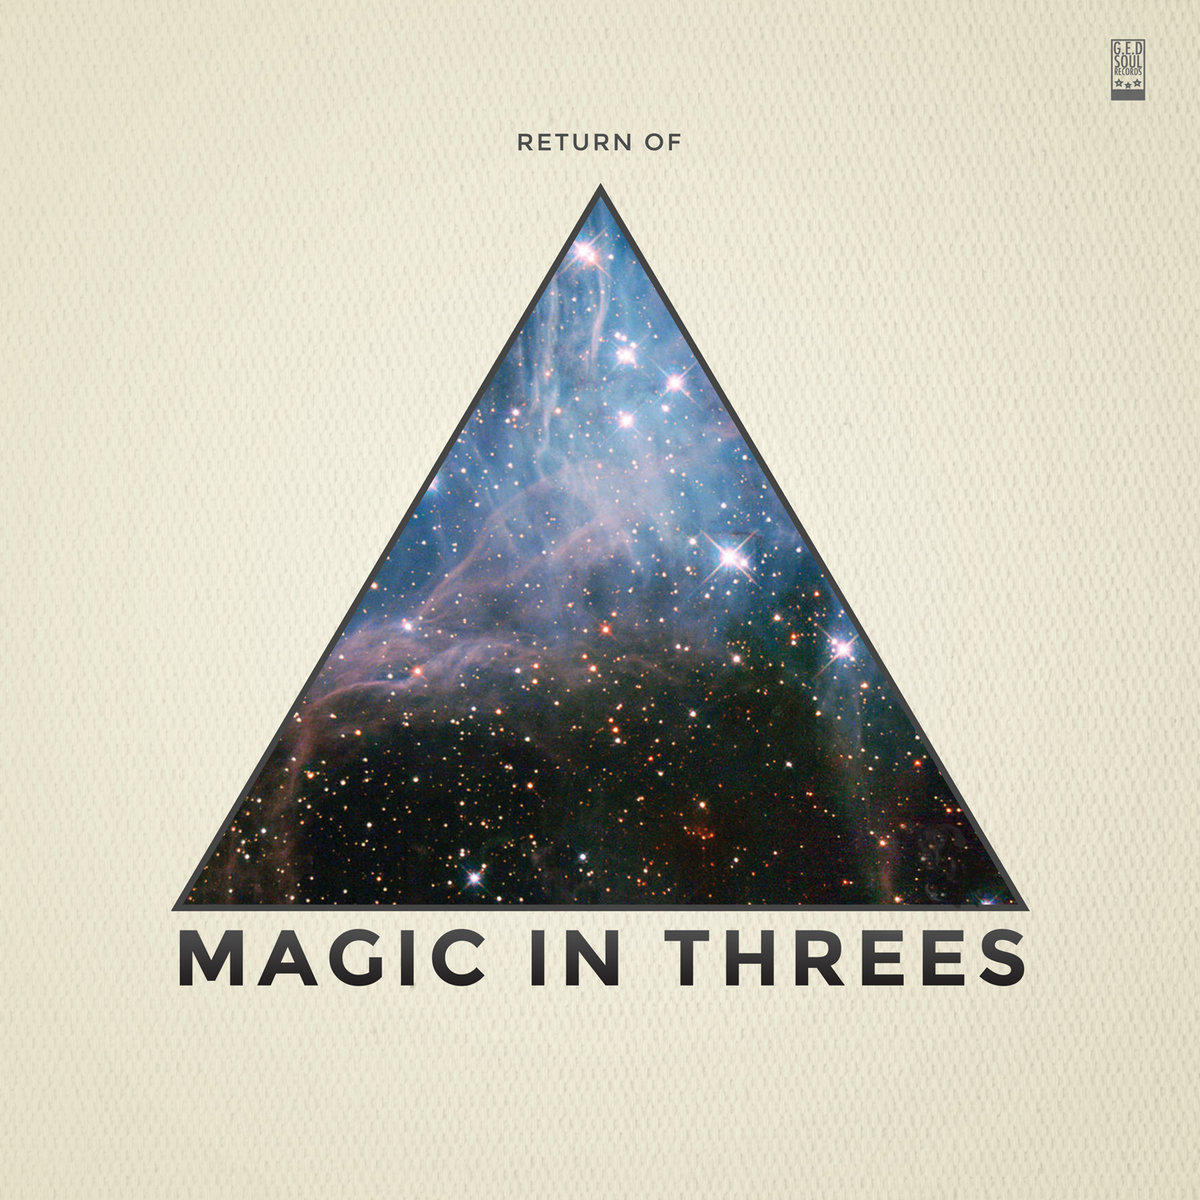 Roll credits | magic in threes.